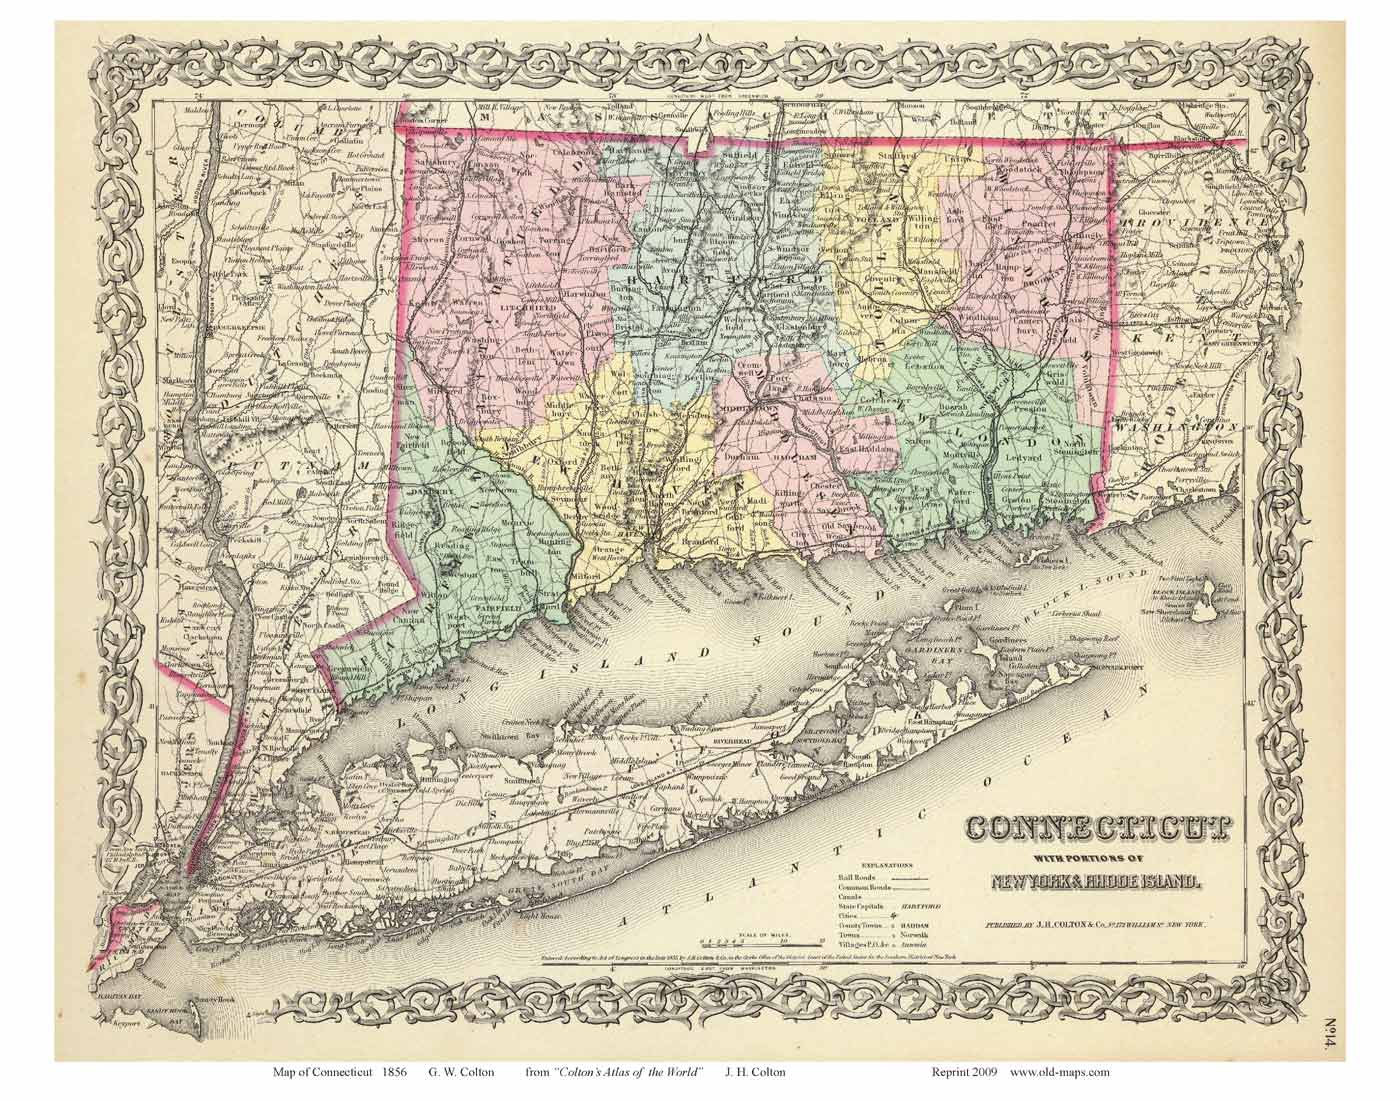 Old Maps Of Connecticut Reprints - Connecticut state map